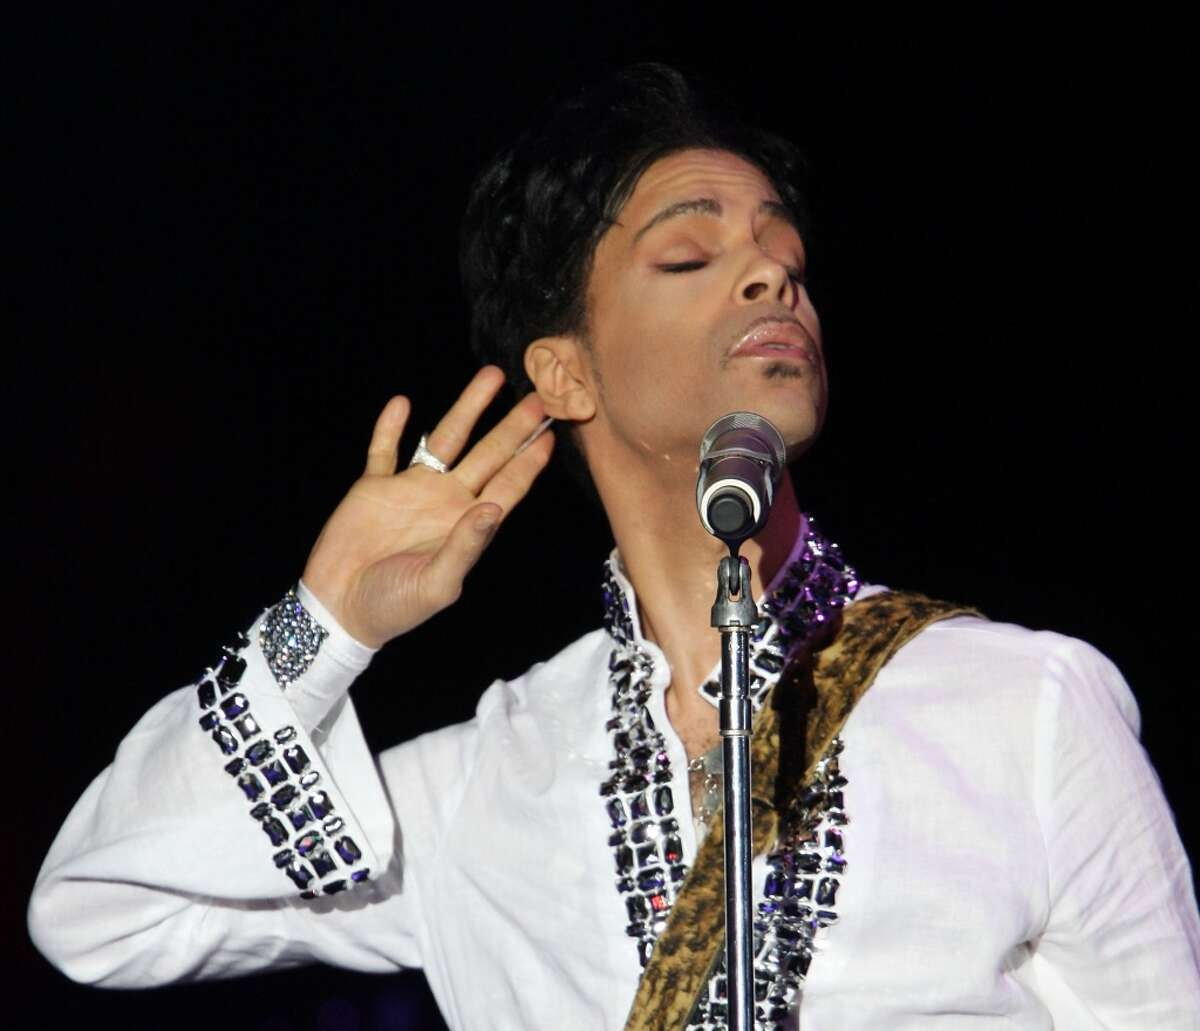 In this file photo, Prince performs during day 2 of the Coachella Valley Music and Arts Festival held at the Empire Polo Field on April 26, 2008 in Indio, California. Click ahead to see vintage photos of Prince.